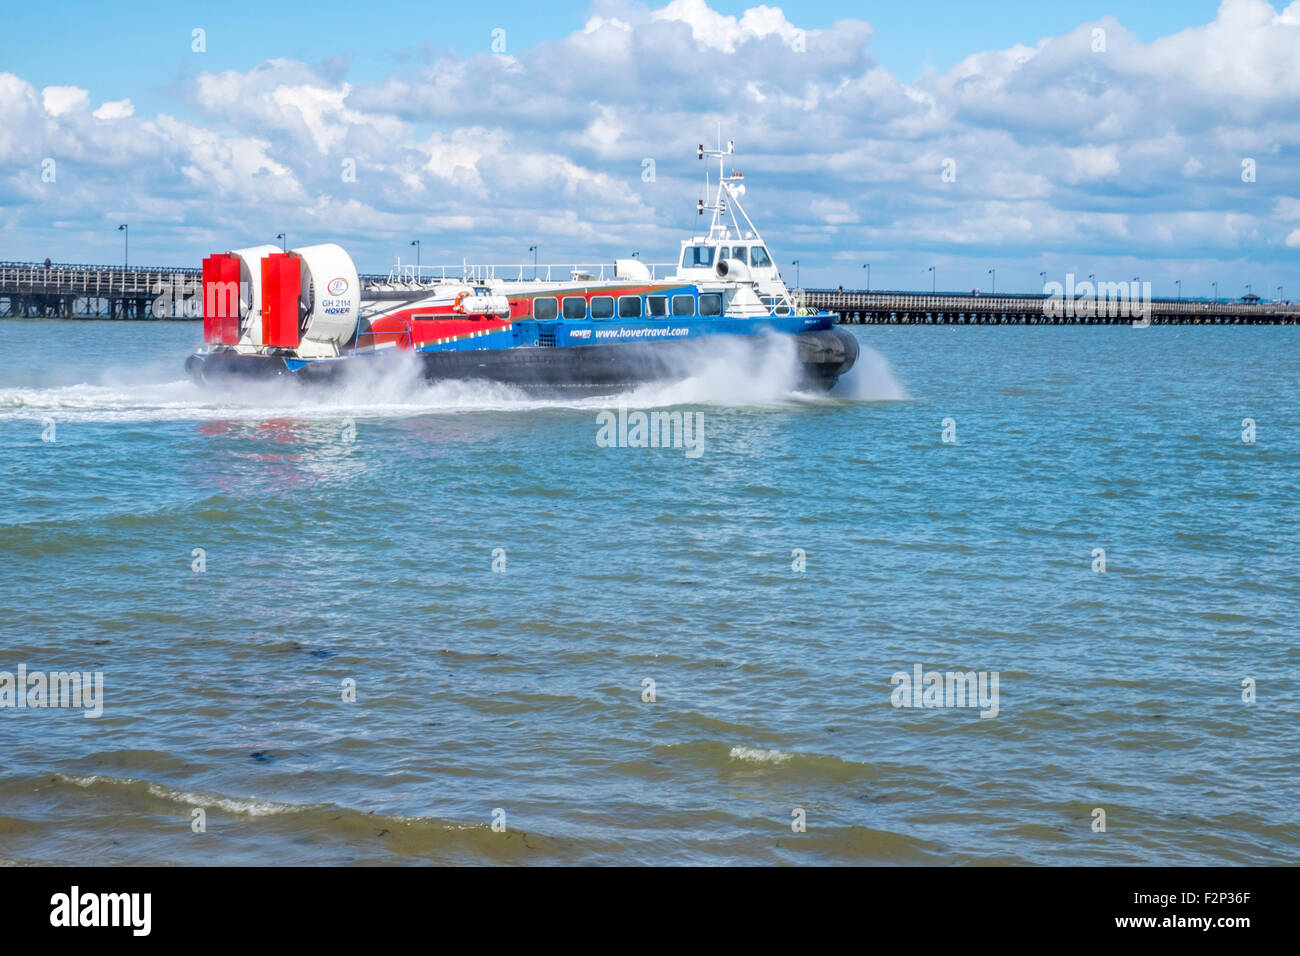 Hovercraft starting a journey floating onto the sea with large amounts of spray - Stock Image